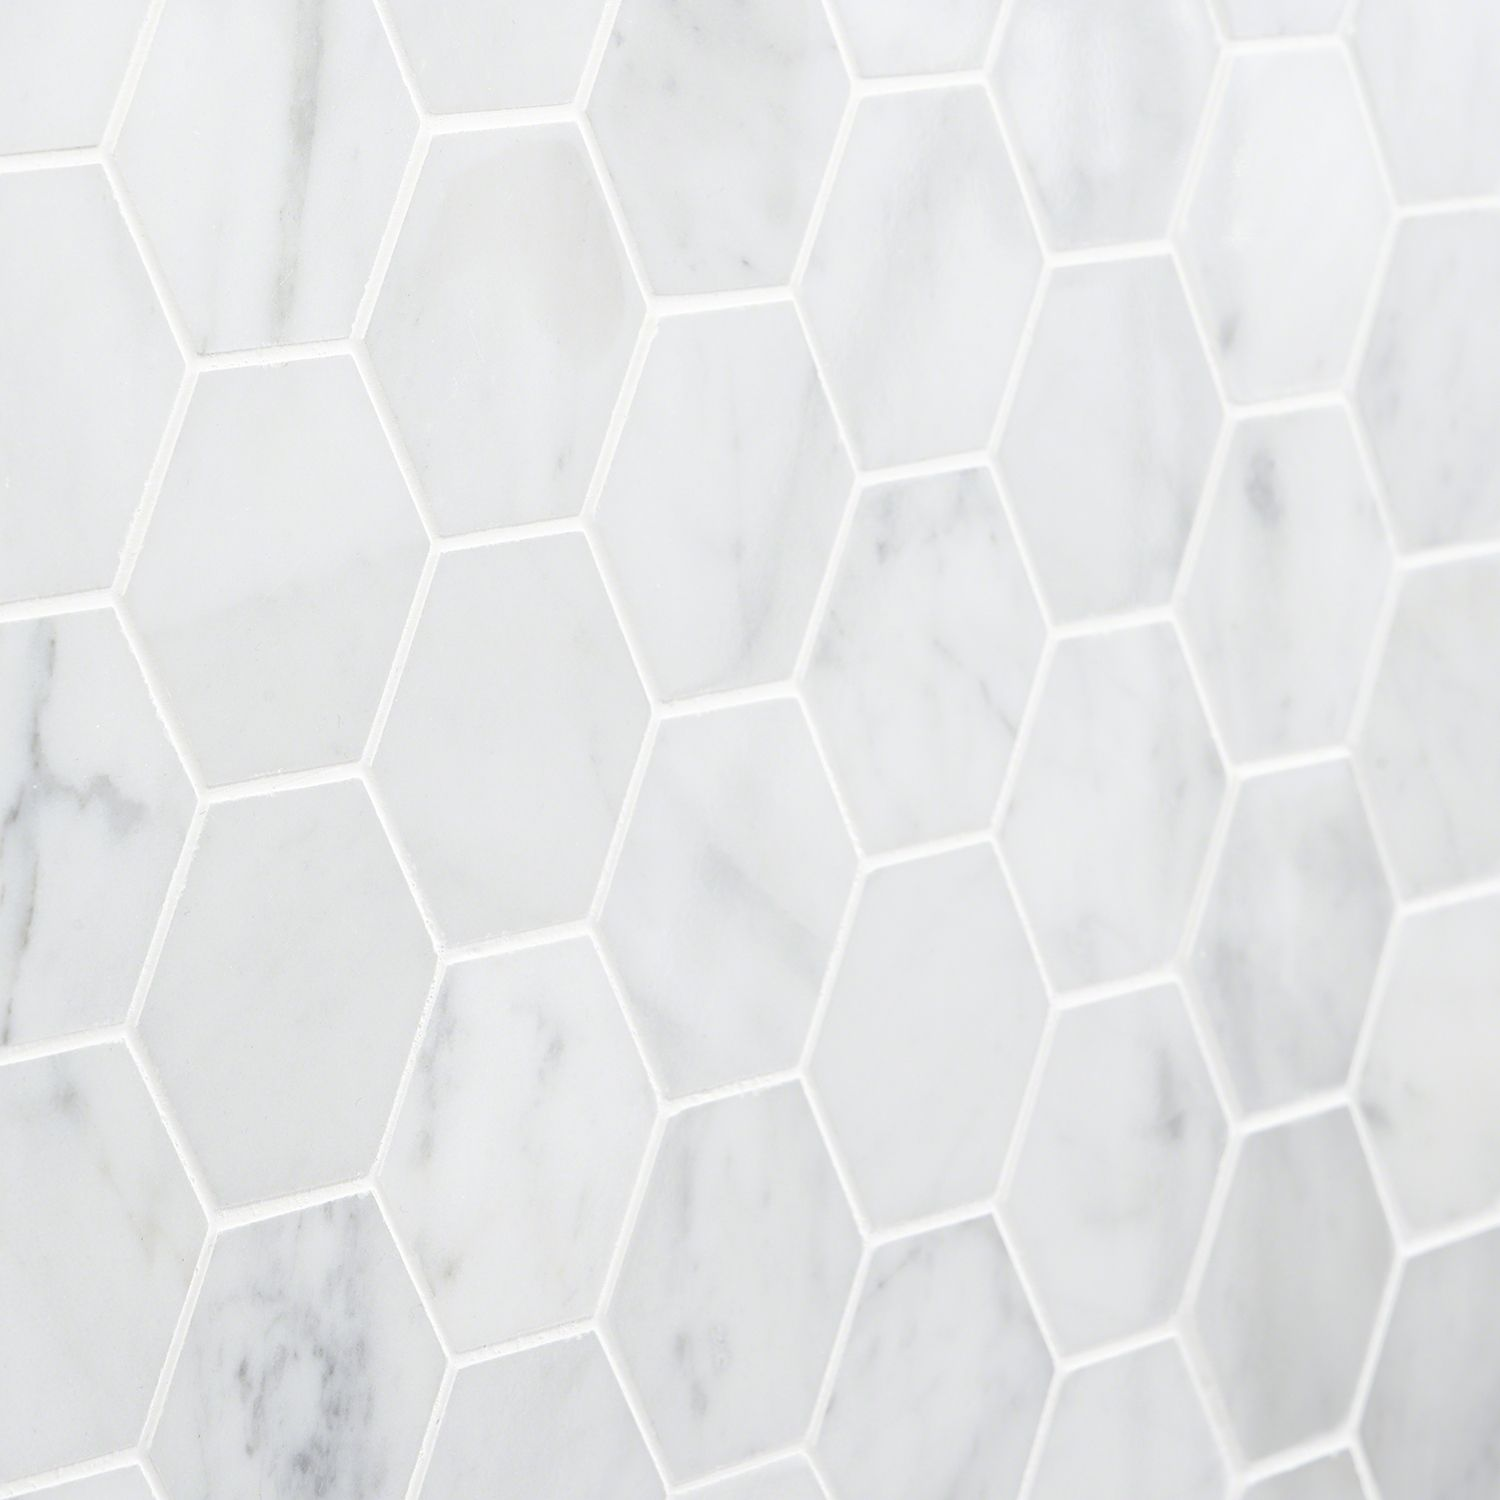 Carrara Marble Mosaic Tile 2 White Hexagon Tilebar Com